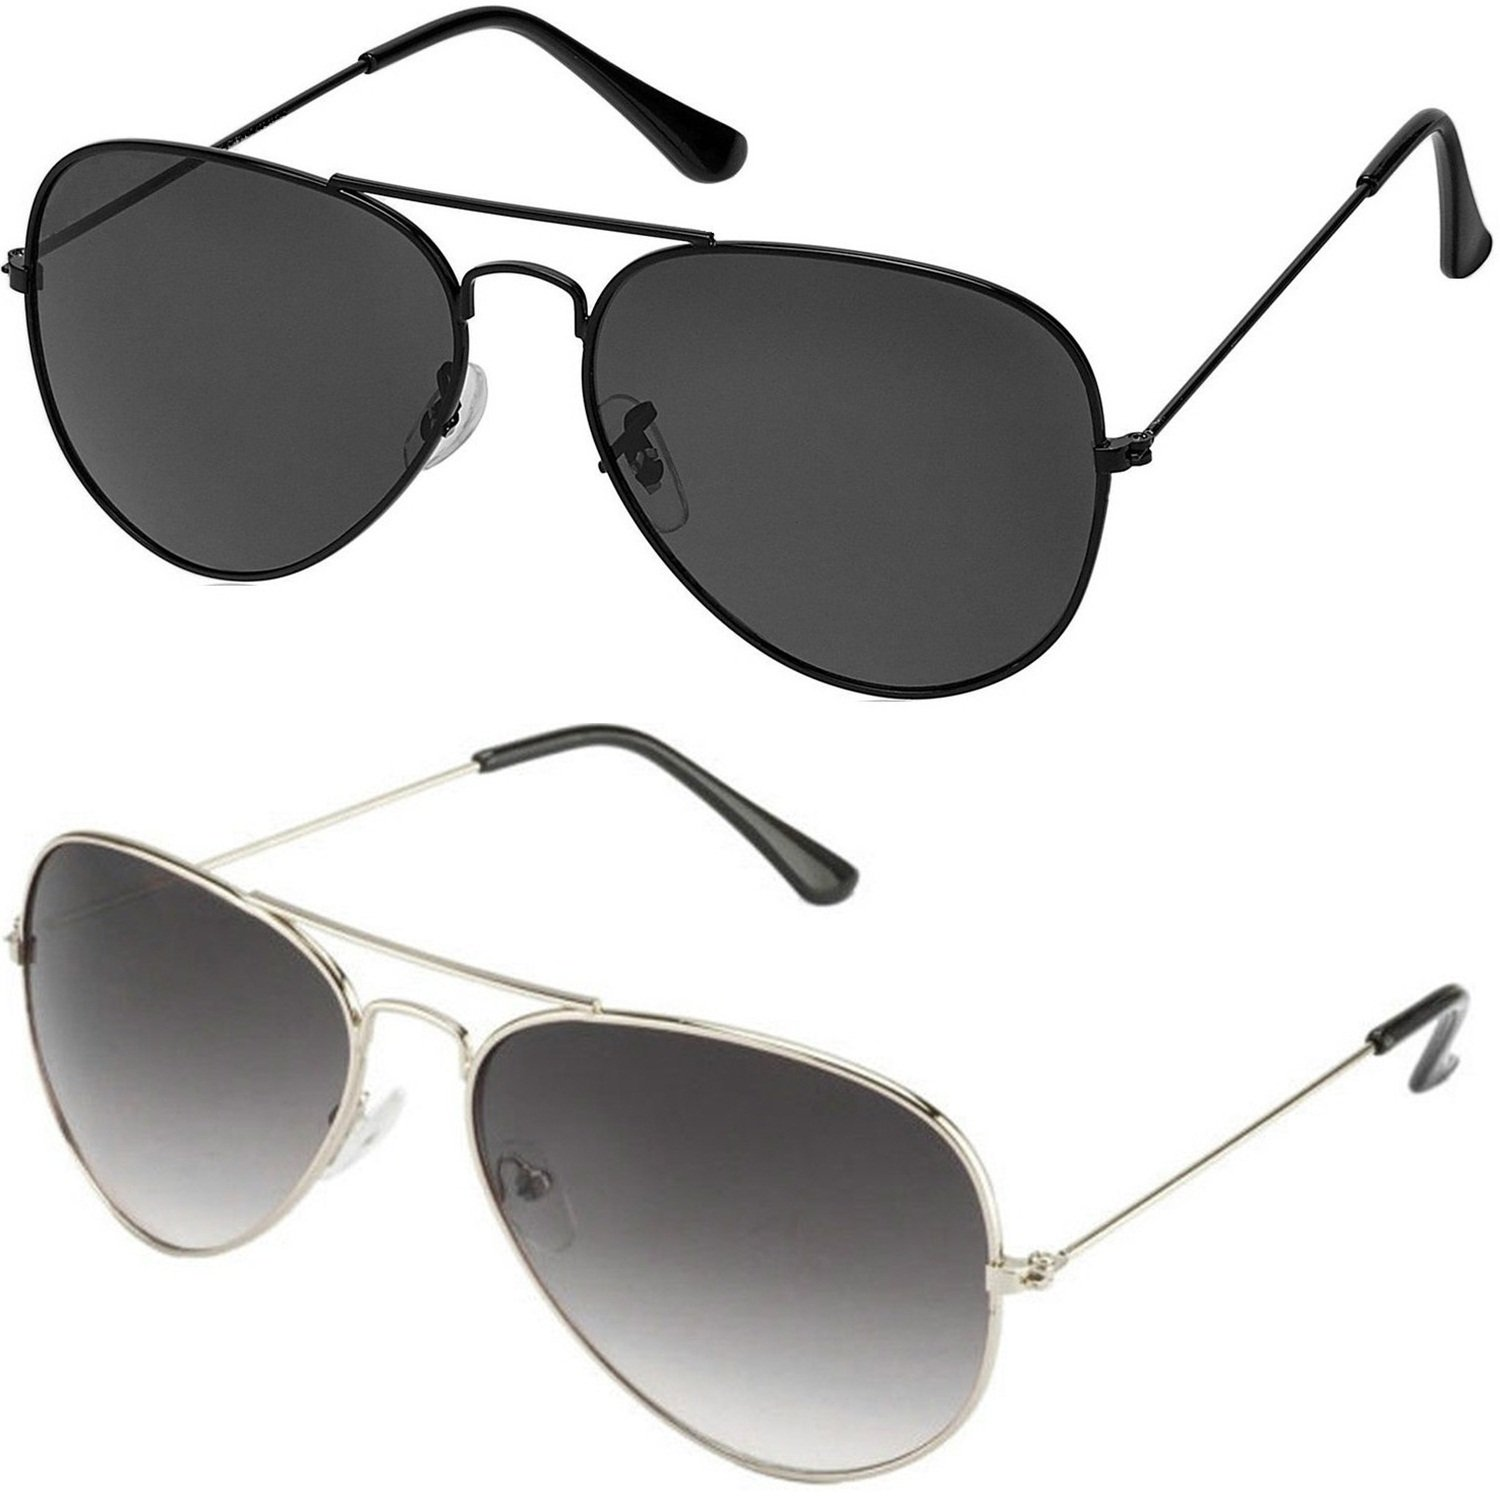 55a54ca69585 SHEOMY GOGALS FOR BOYS and Girls - COMBO OF STYLISH SILVER GREY AVIATOR AND  FULL BLACK AVIATOR SUNGLASSES WITH 2 BOXES  Amazon.in  Clothing    Accessories